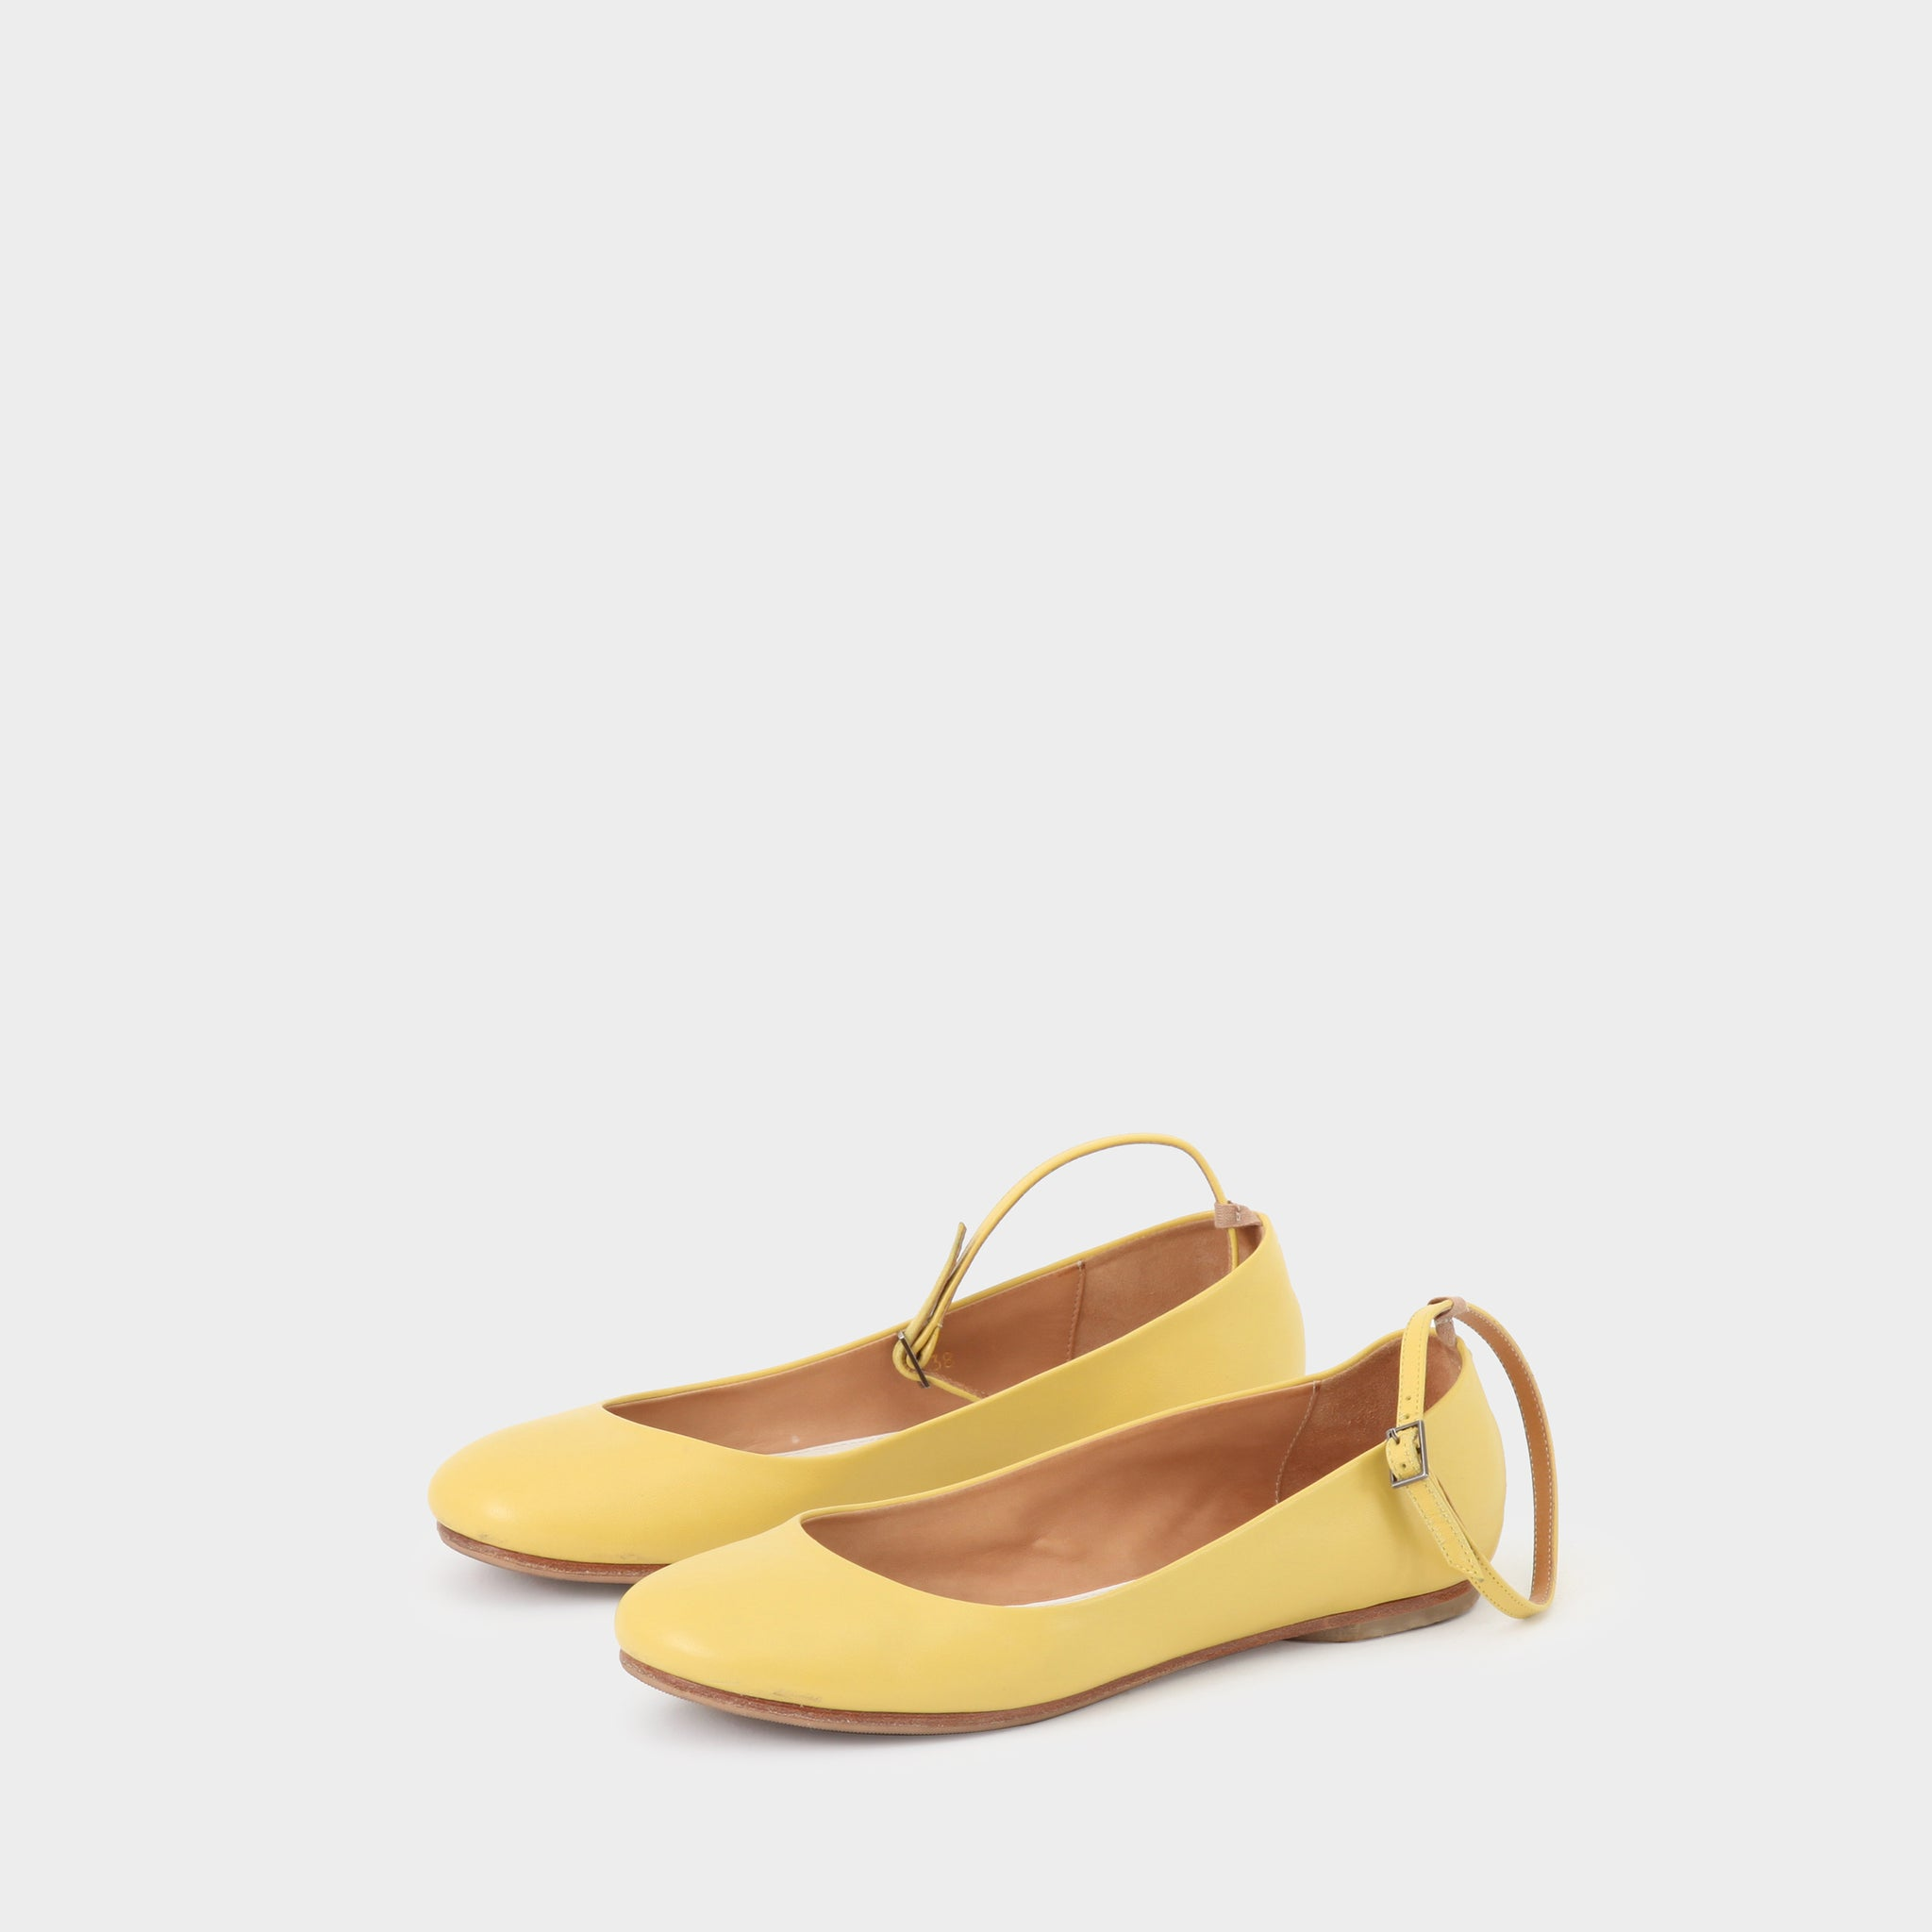 Margiela Canary Yellow Ballet Flat with Ankle Strap